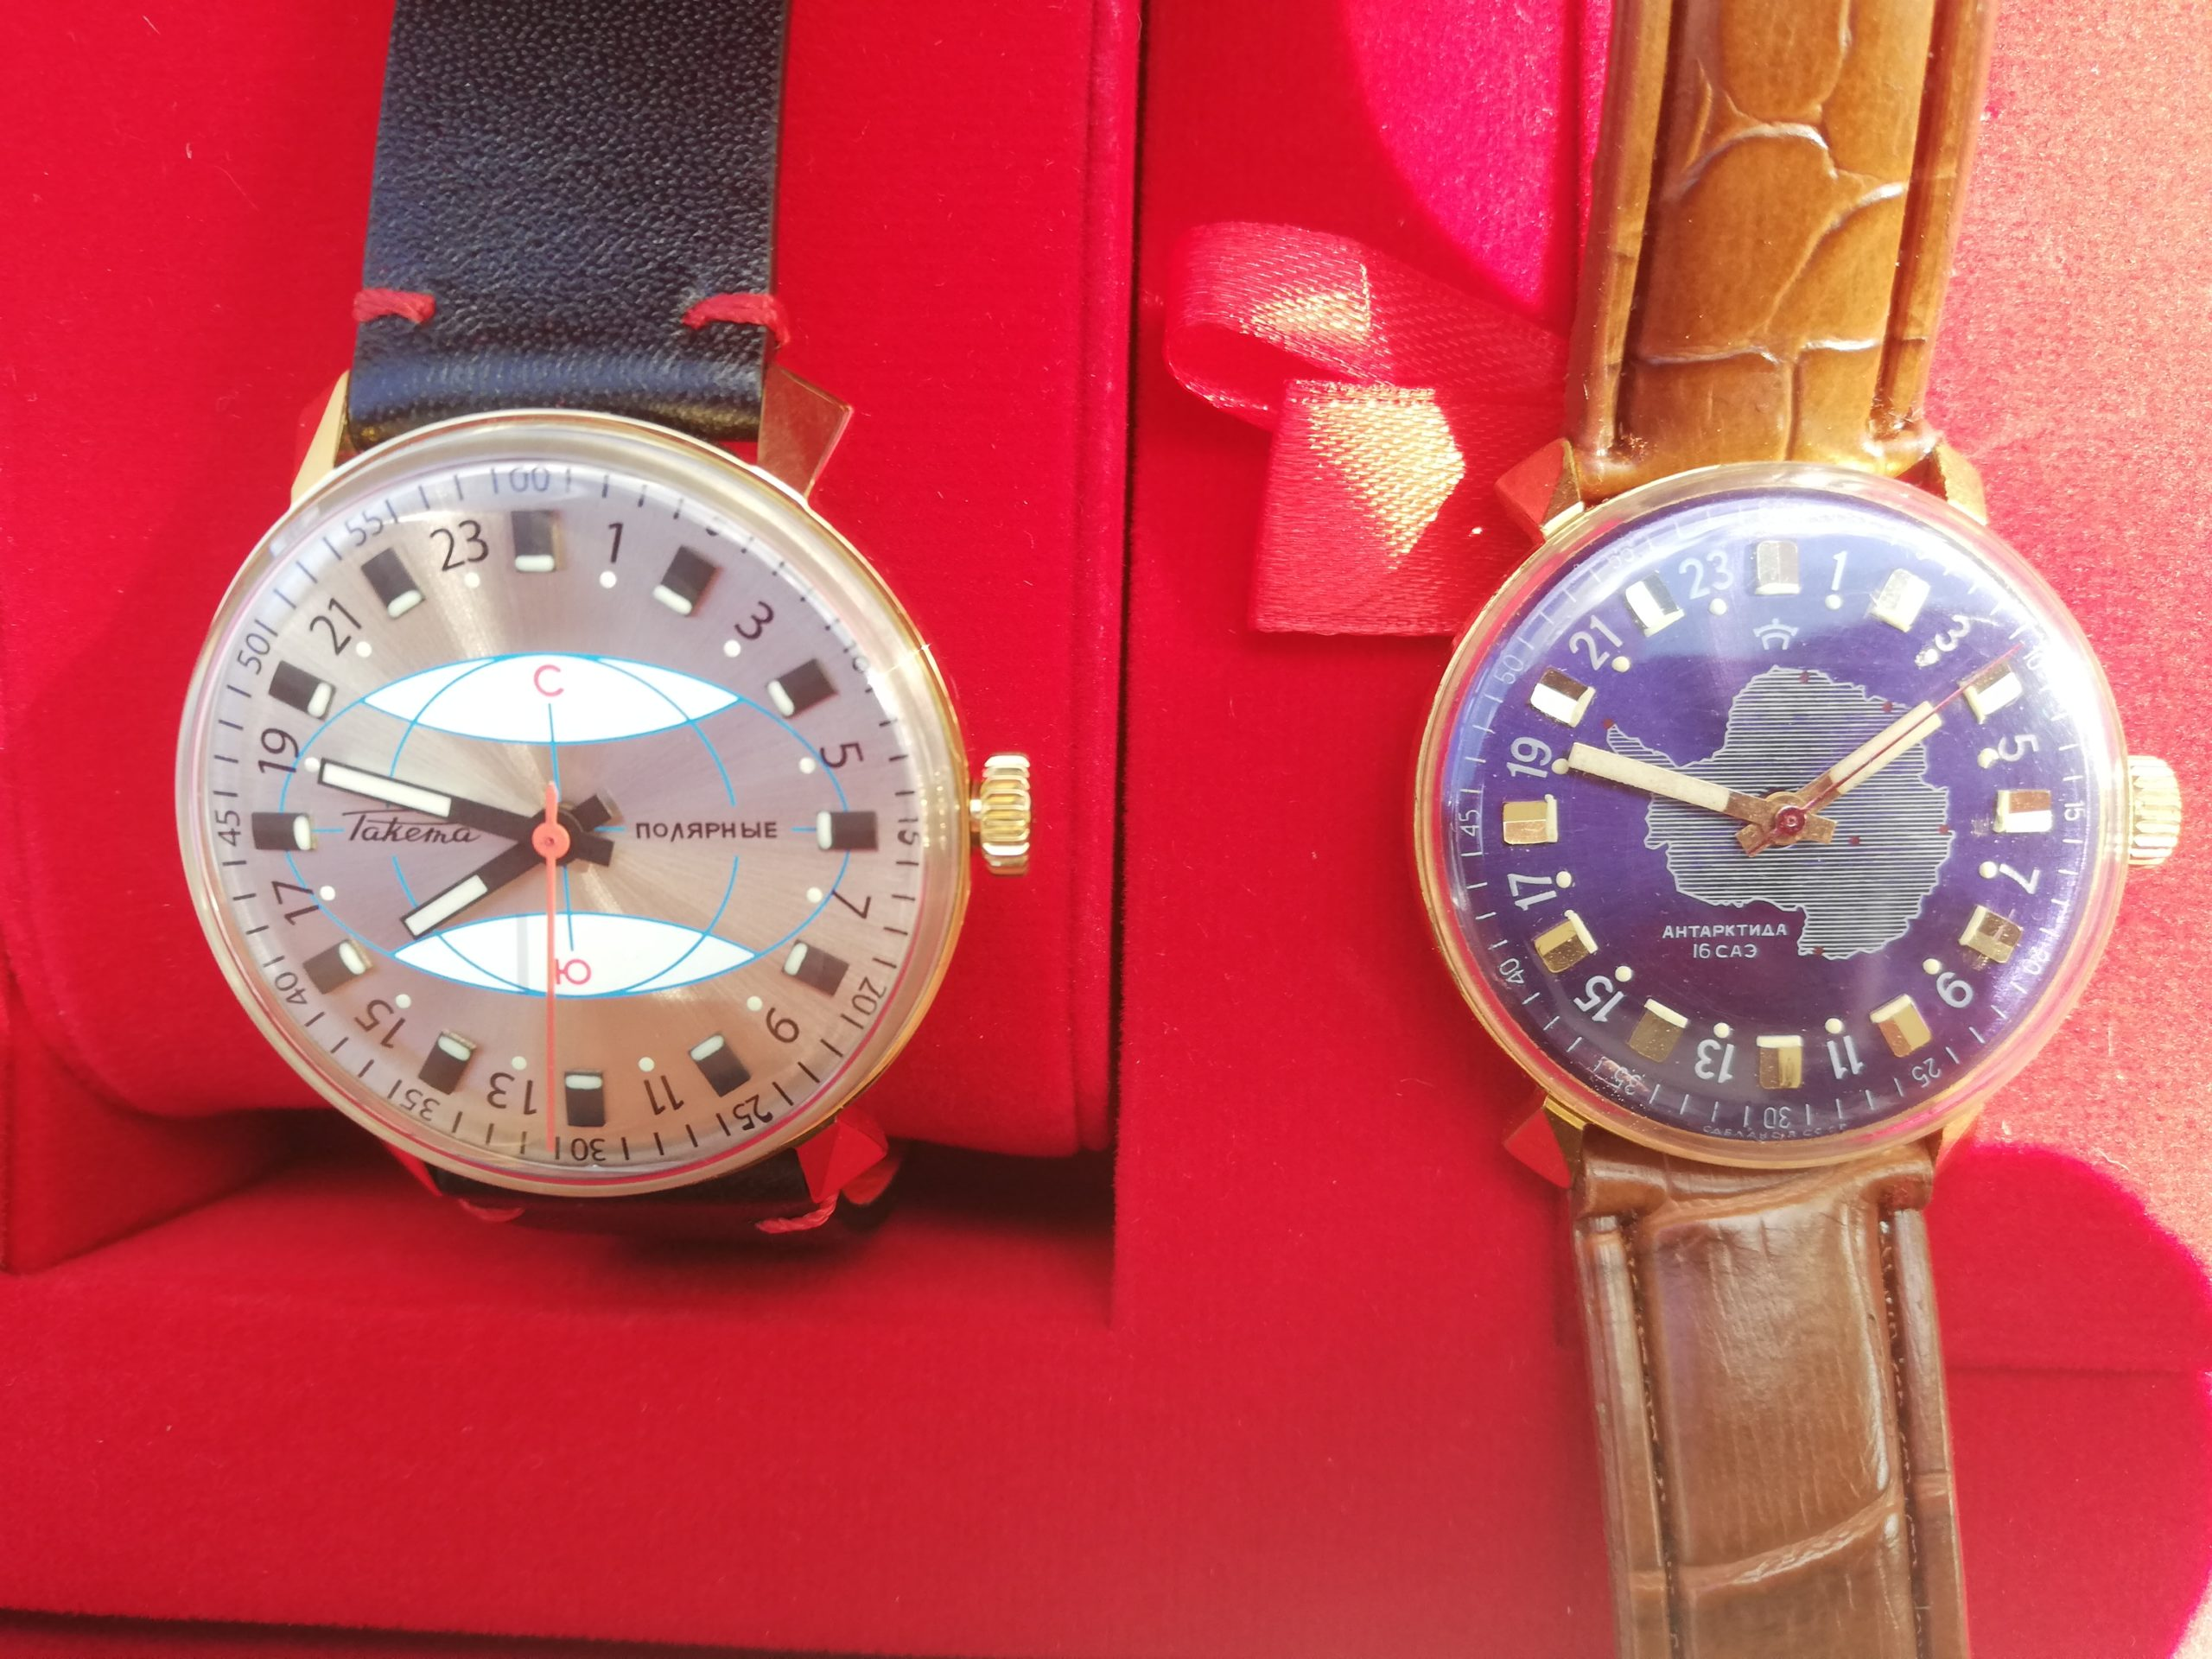 Raketa Polar watches